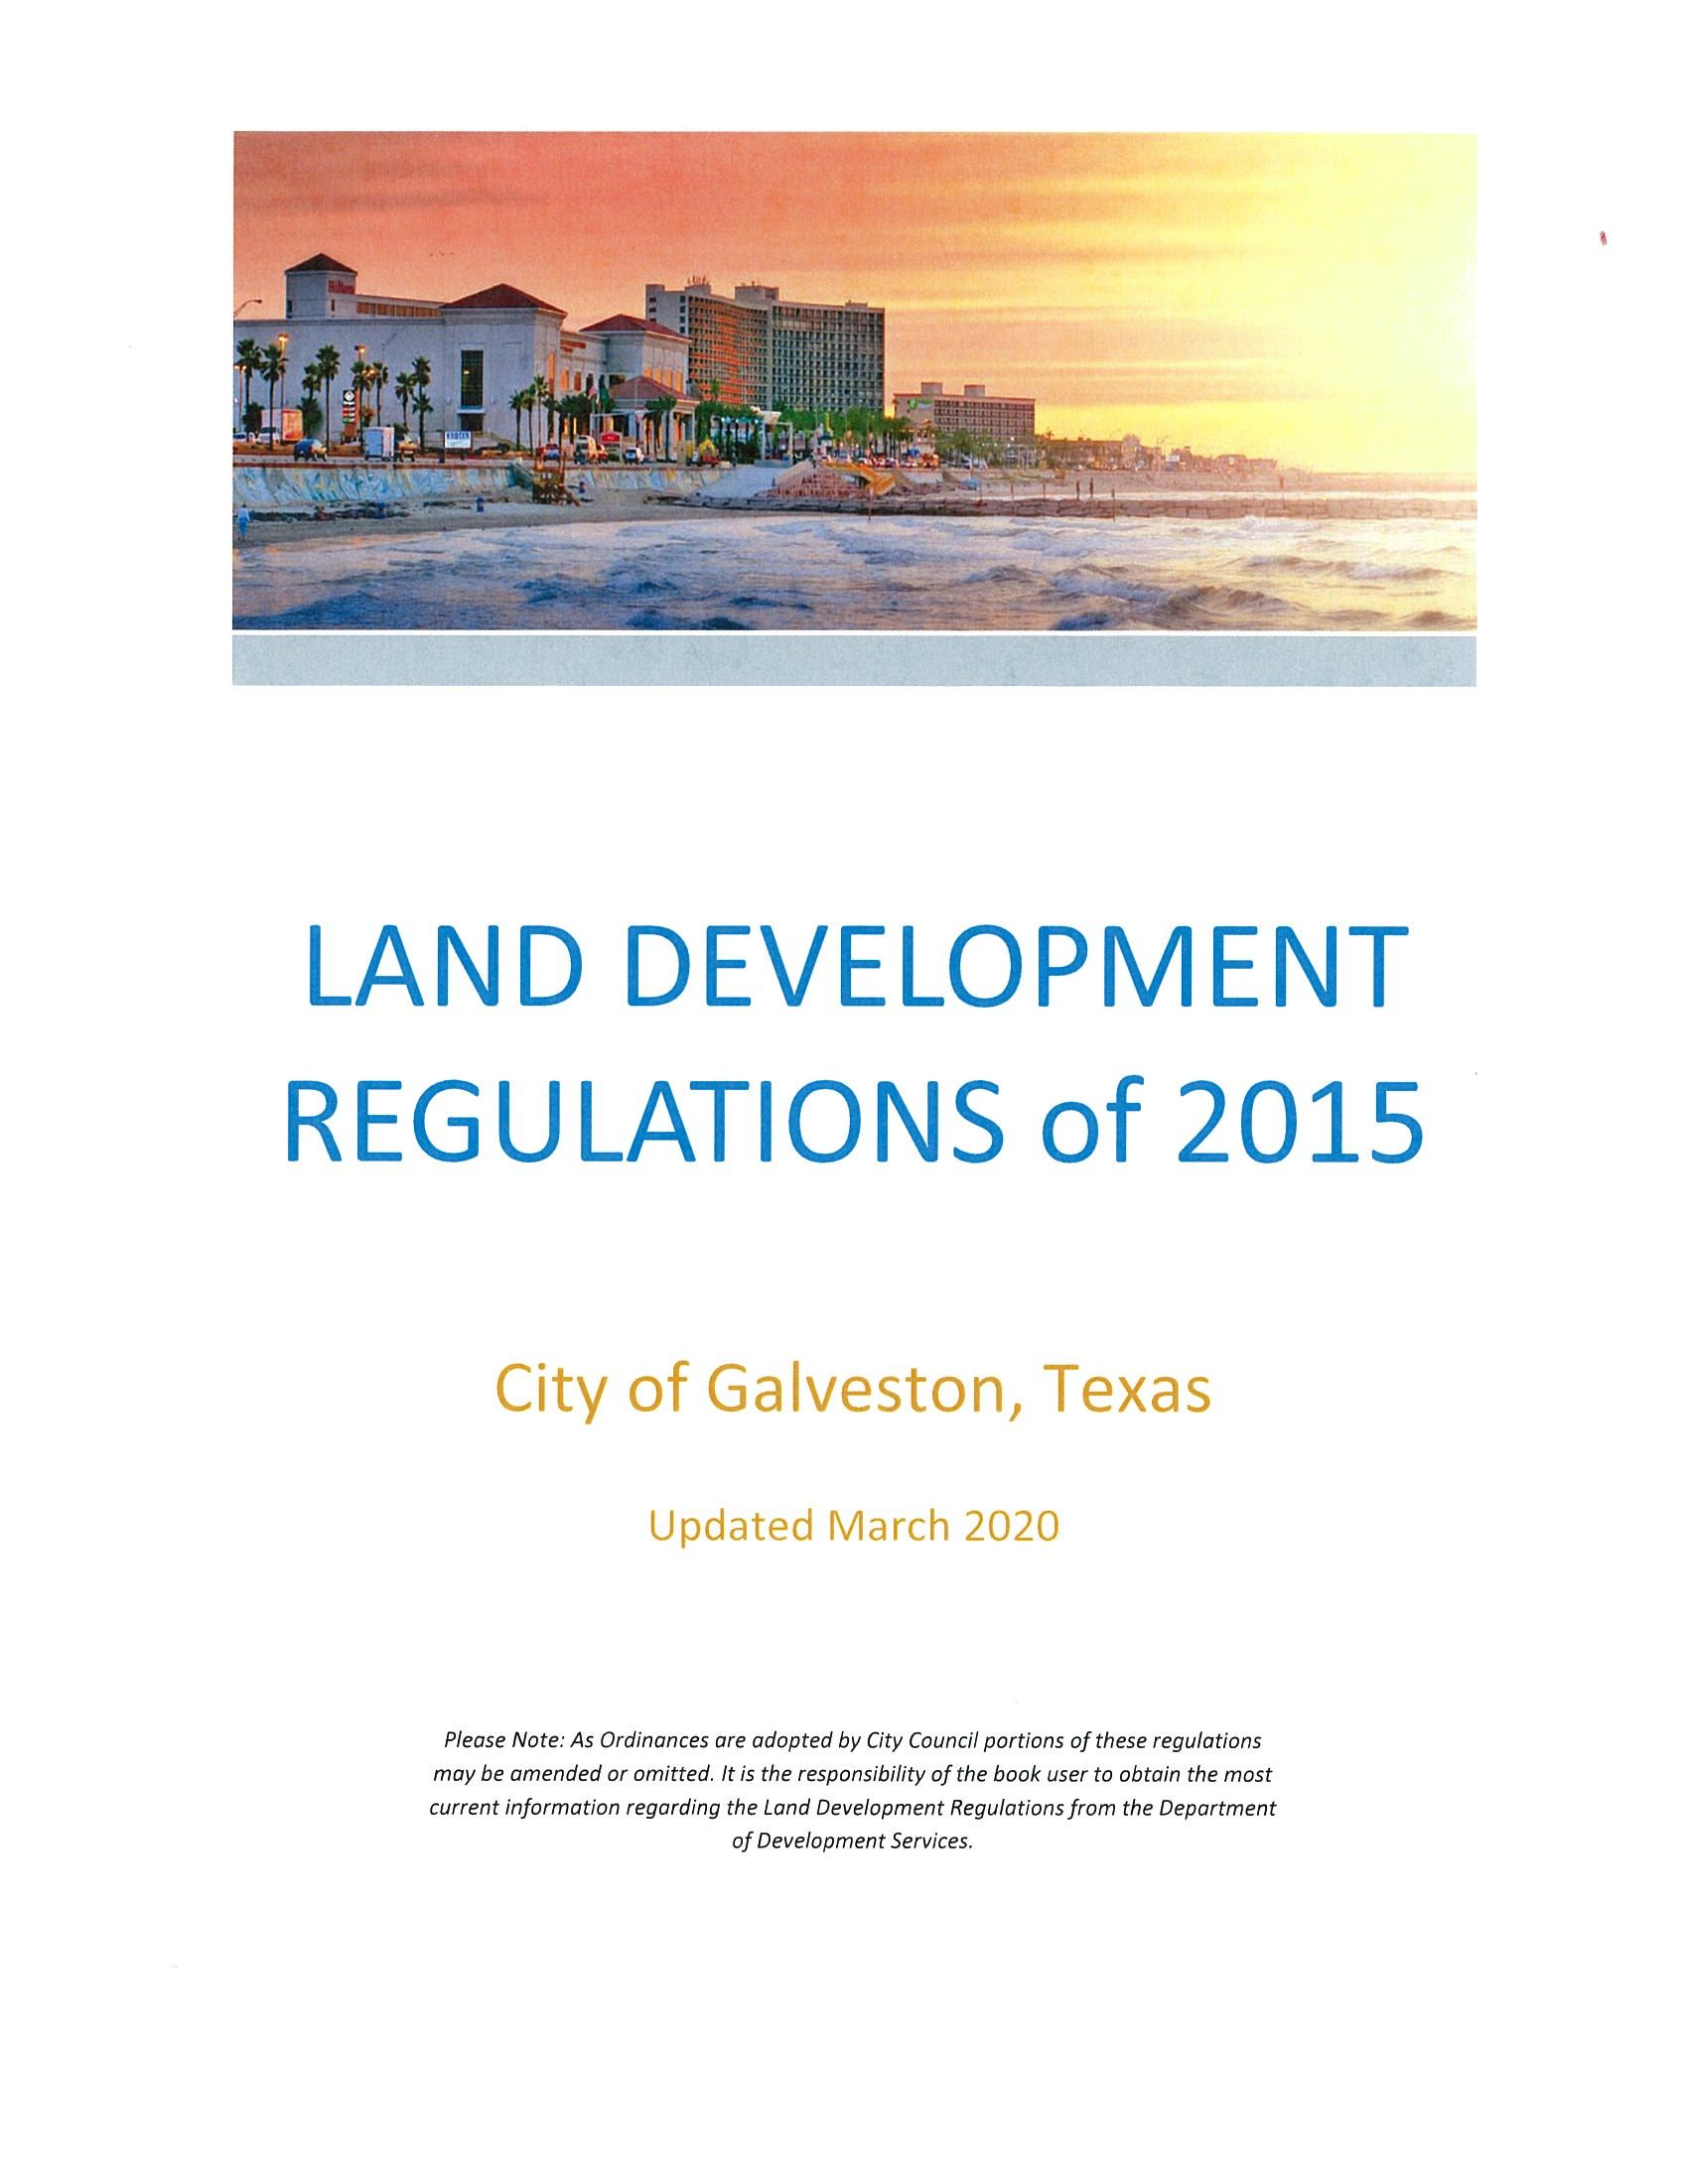 Land Development Regulations Cover - Updated December 2018